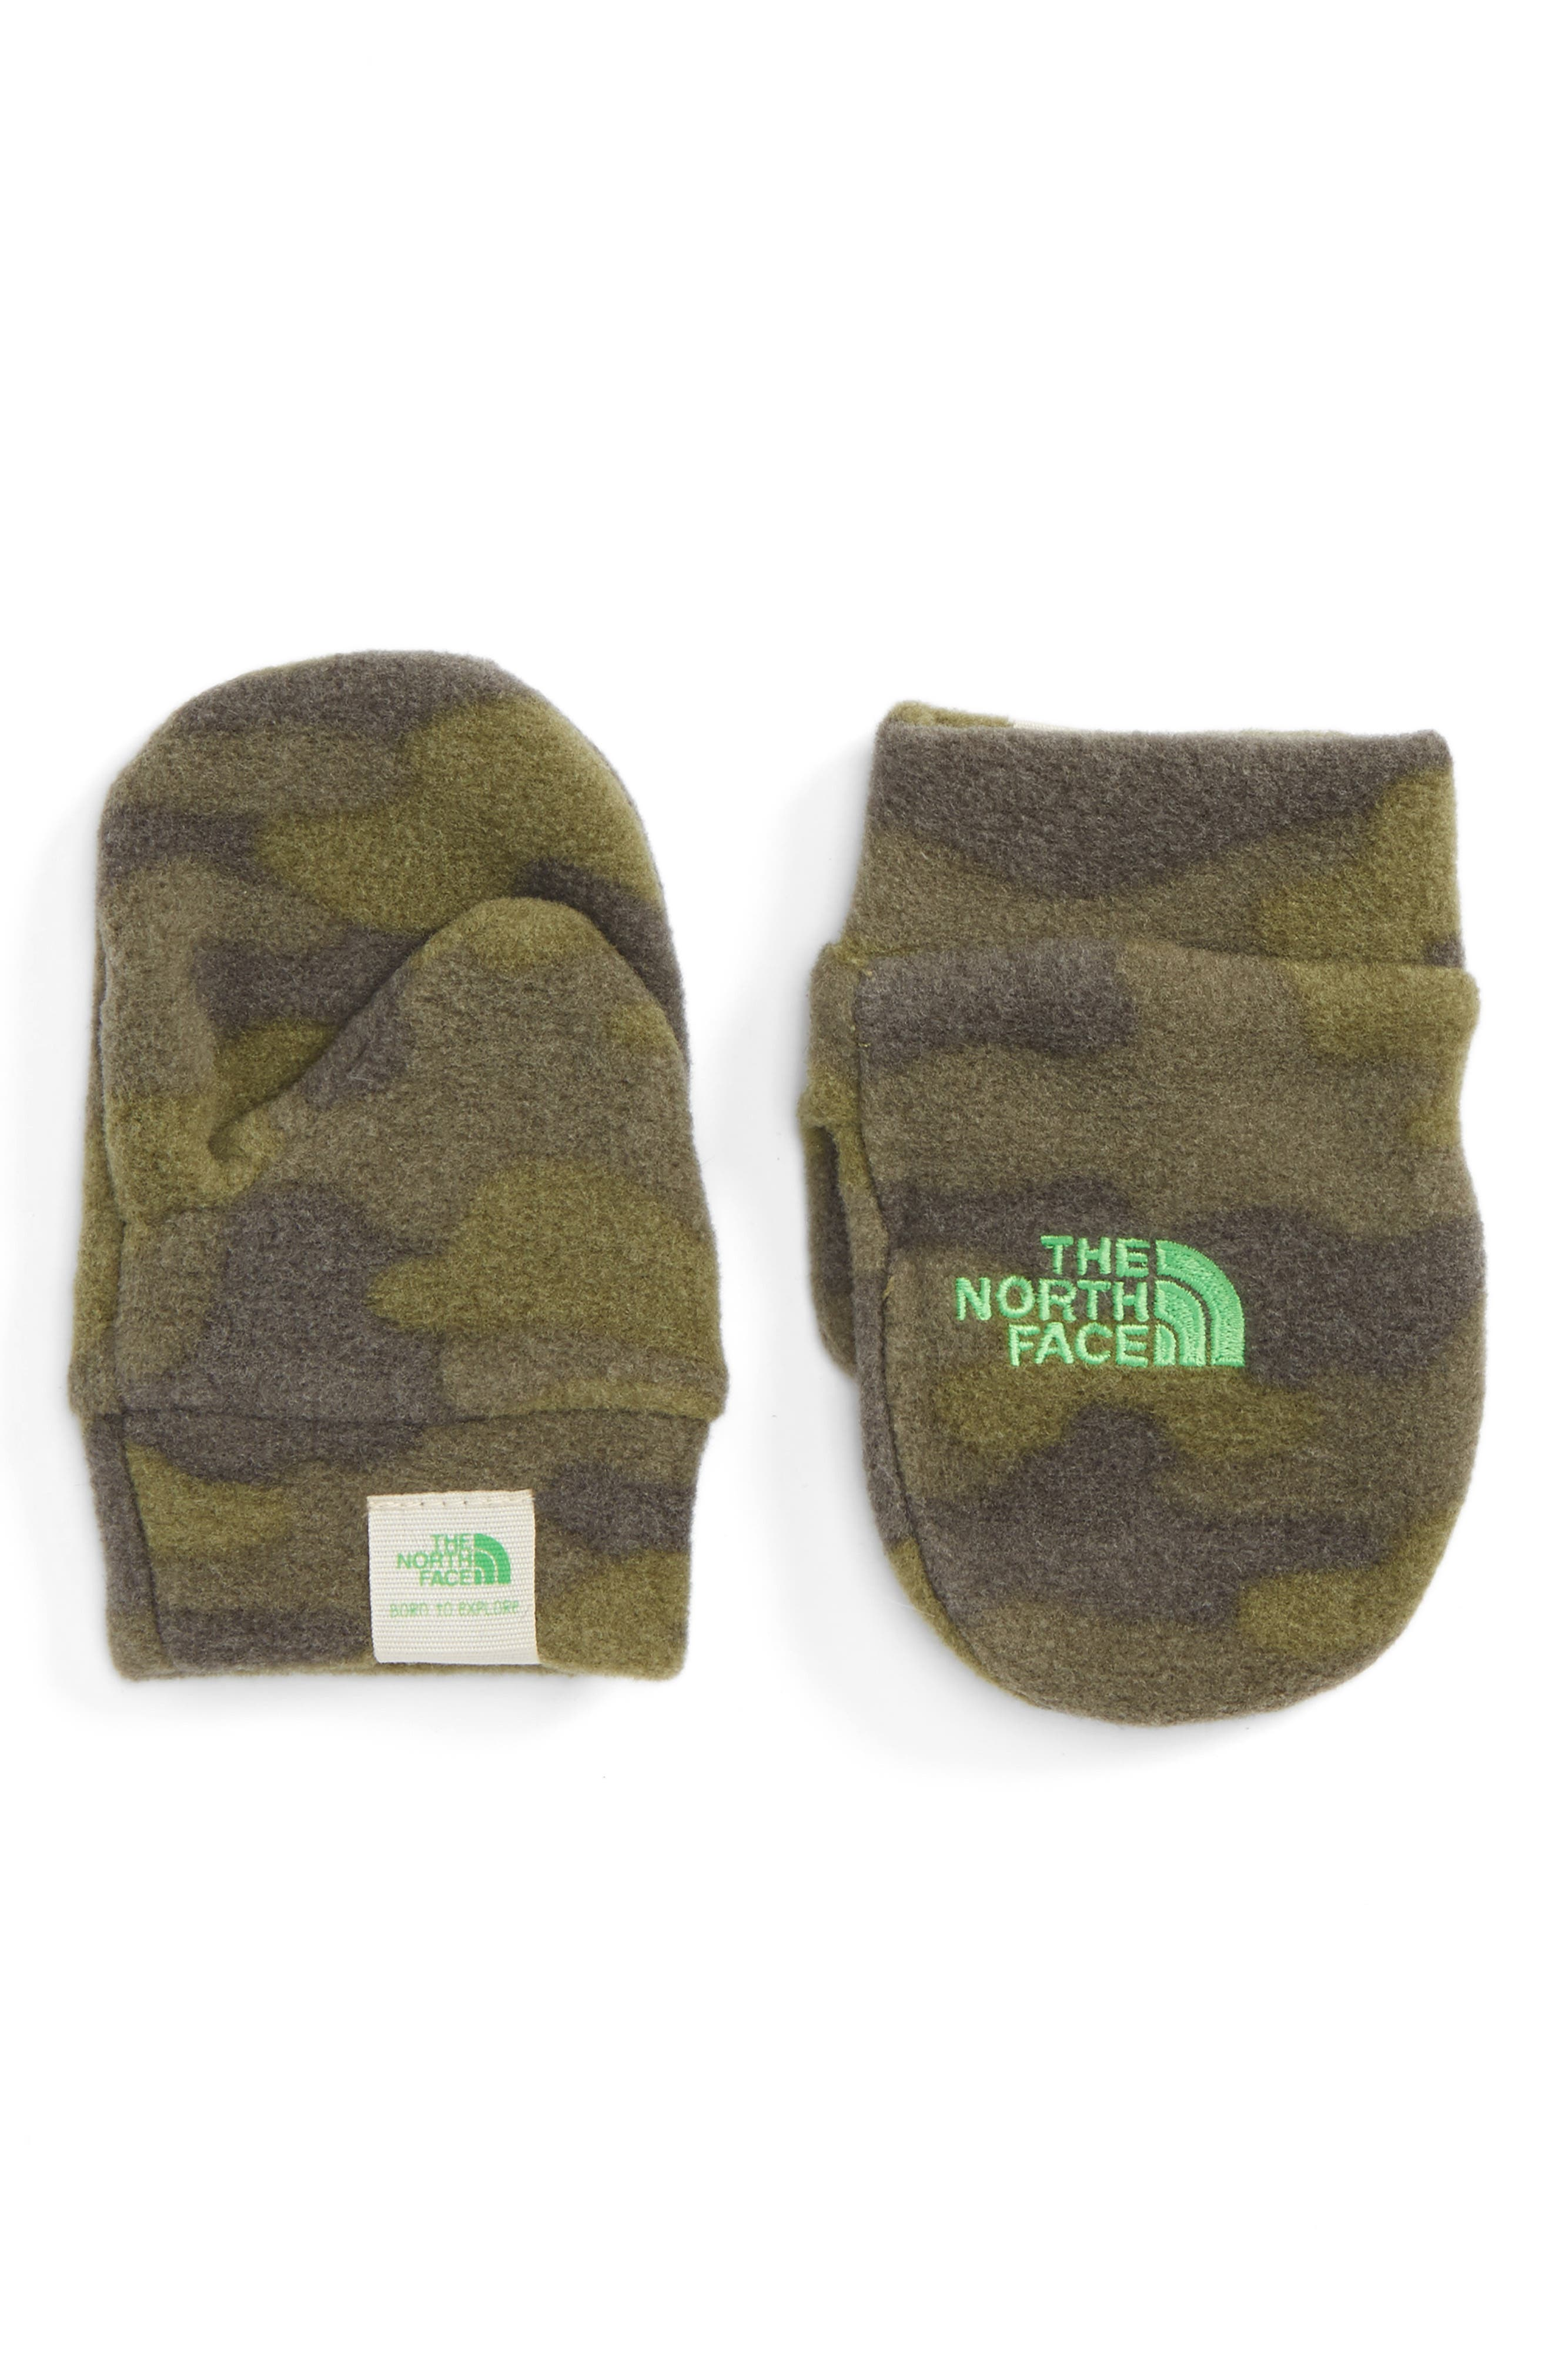 'Nugget' Fleece Mittens,                         Main,                         color, Burnt Olive Green Camo